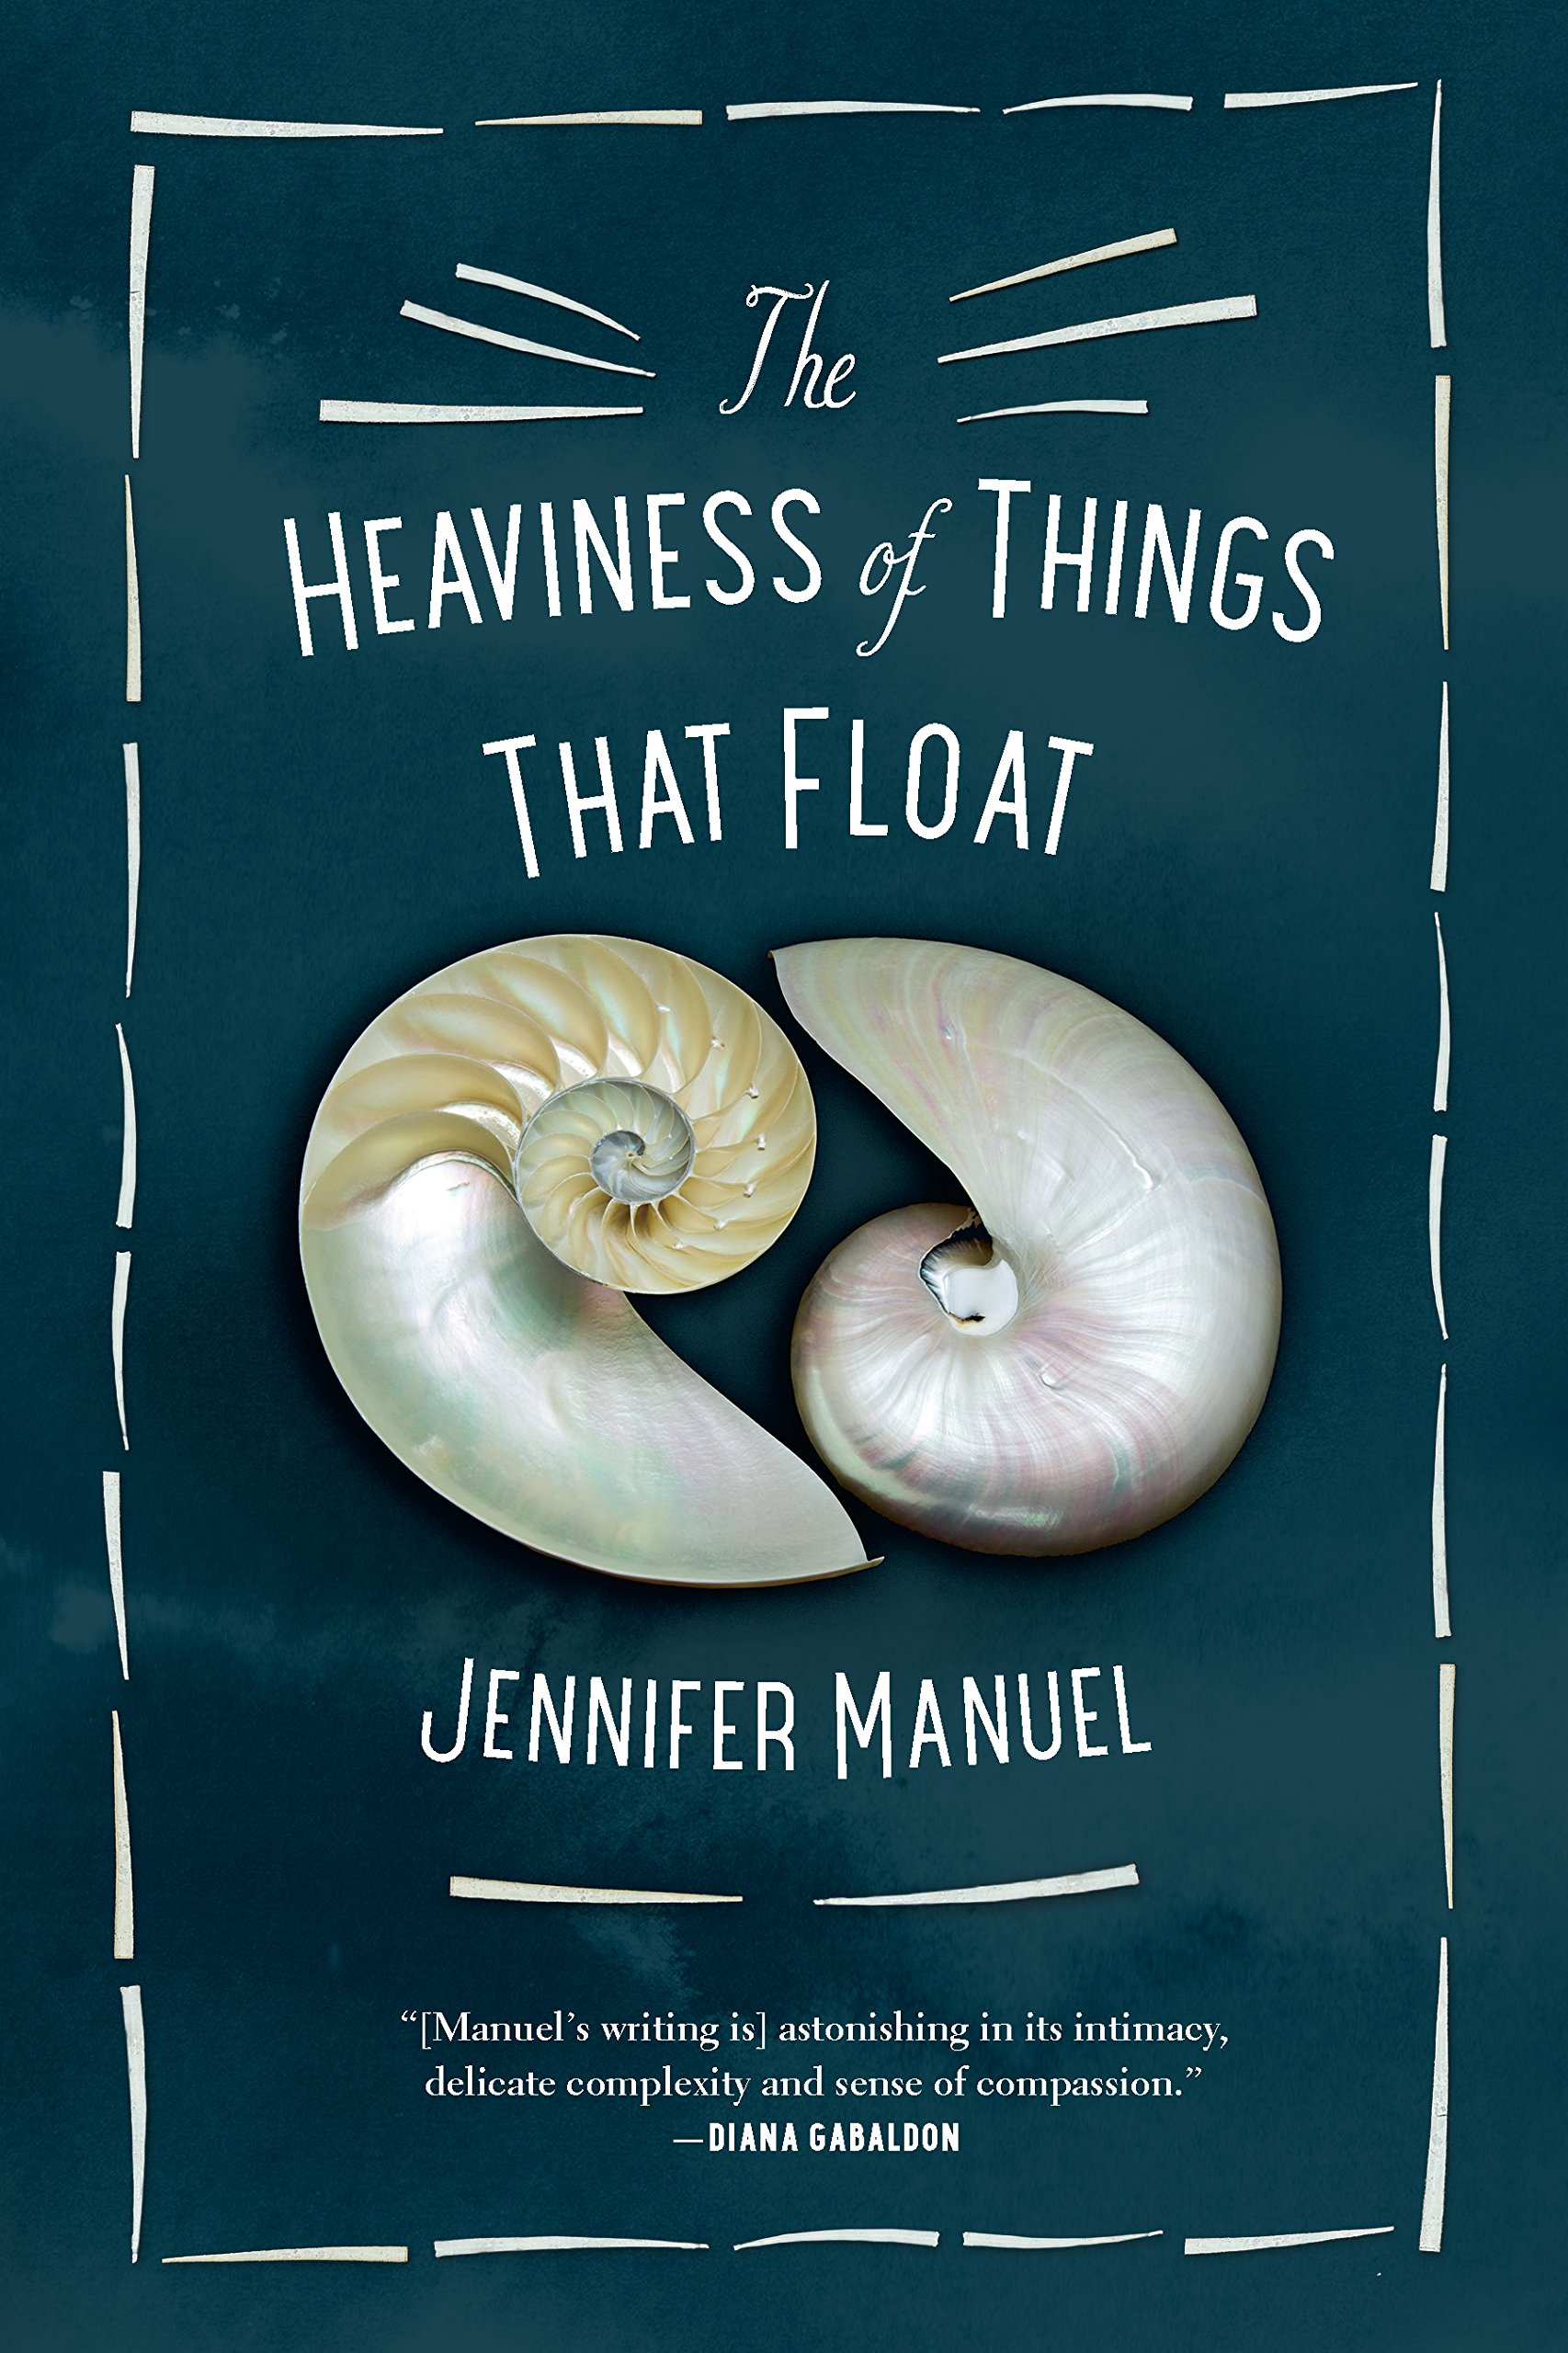 Heaviness of Things that Float, The